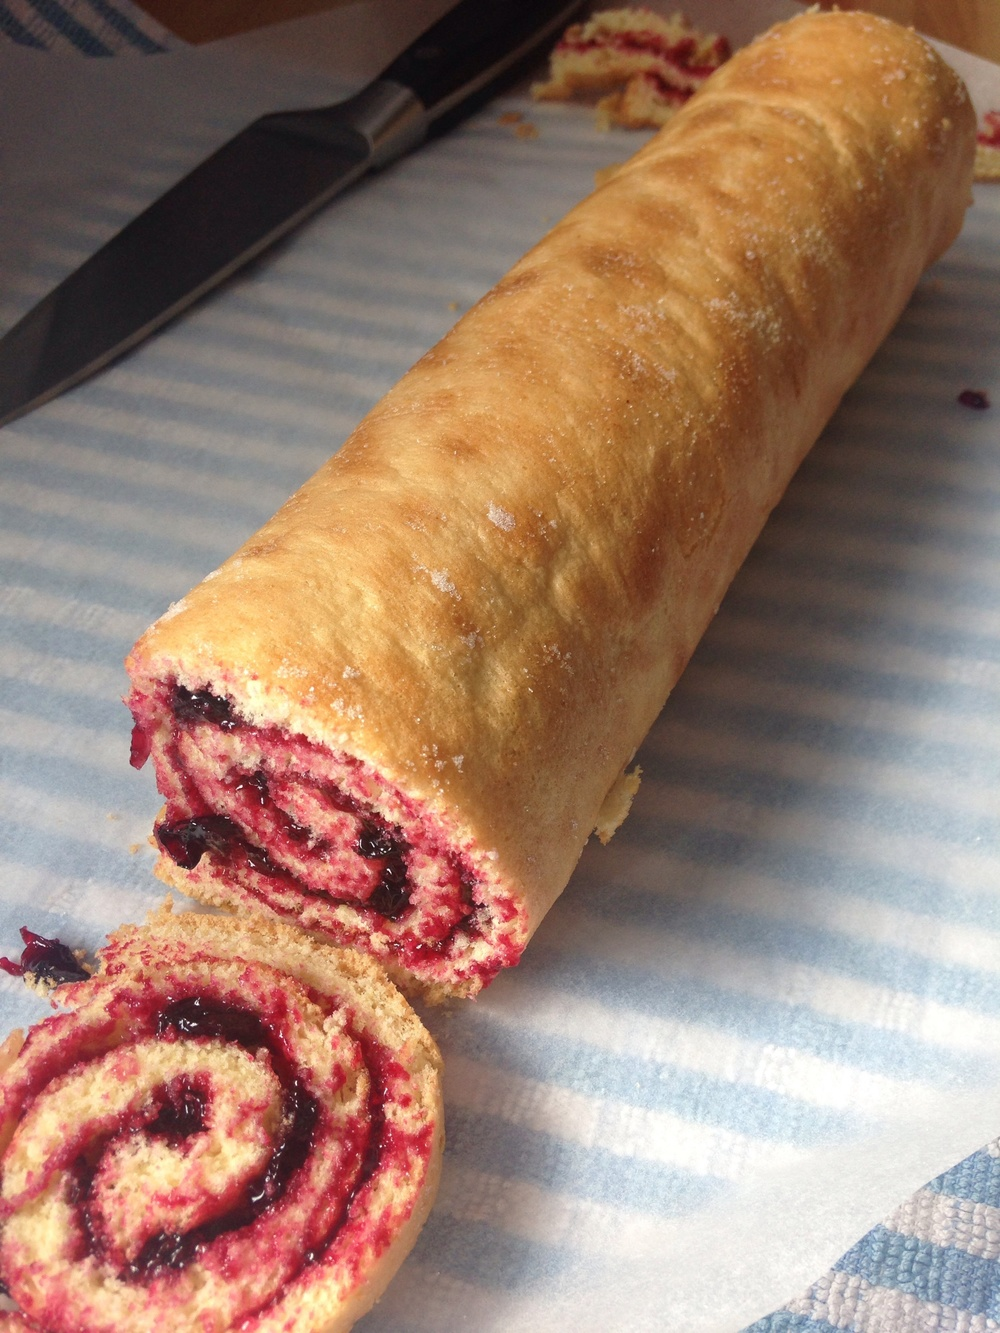 Homemade Swiss roll with homemade Blackcurrant jam.